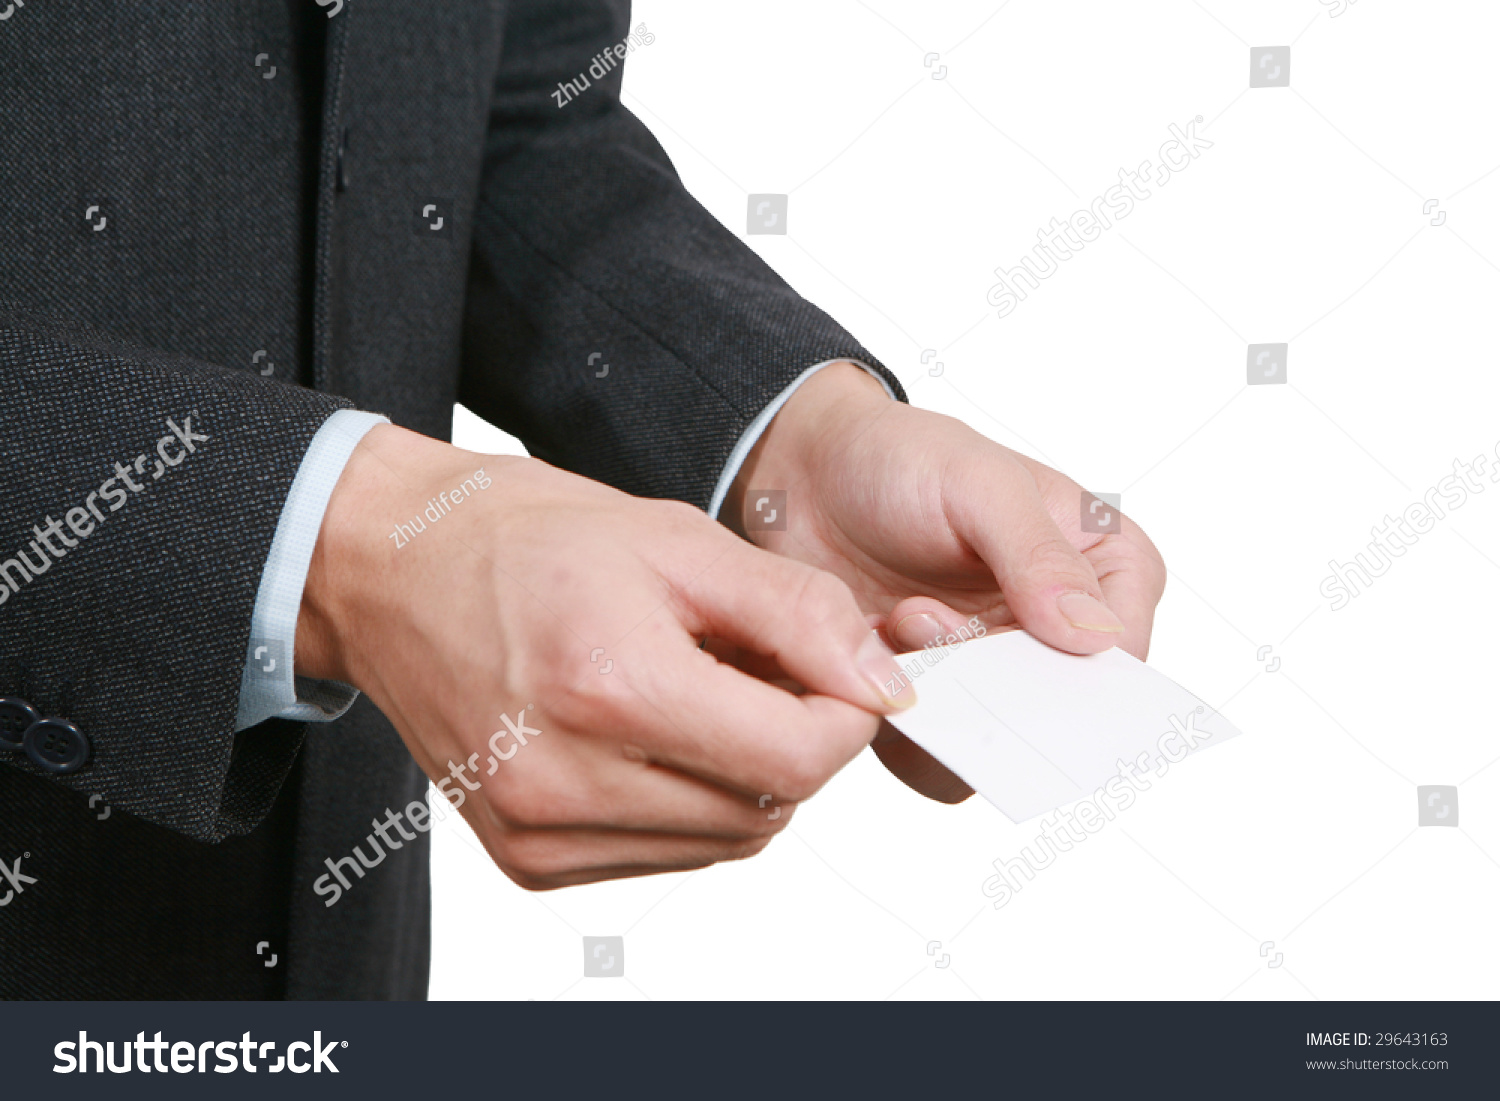 Young Asian Business Man Handing Blank Stock Photo 29643163 ...